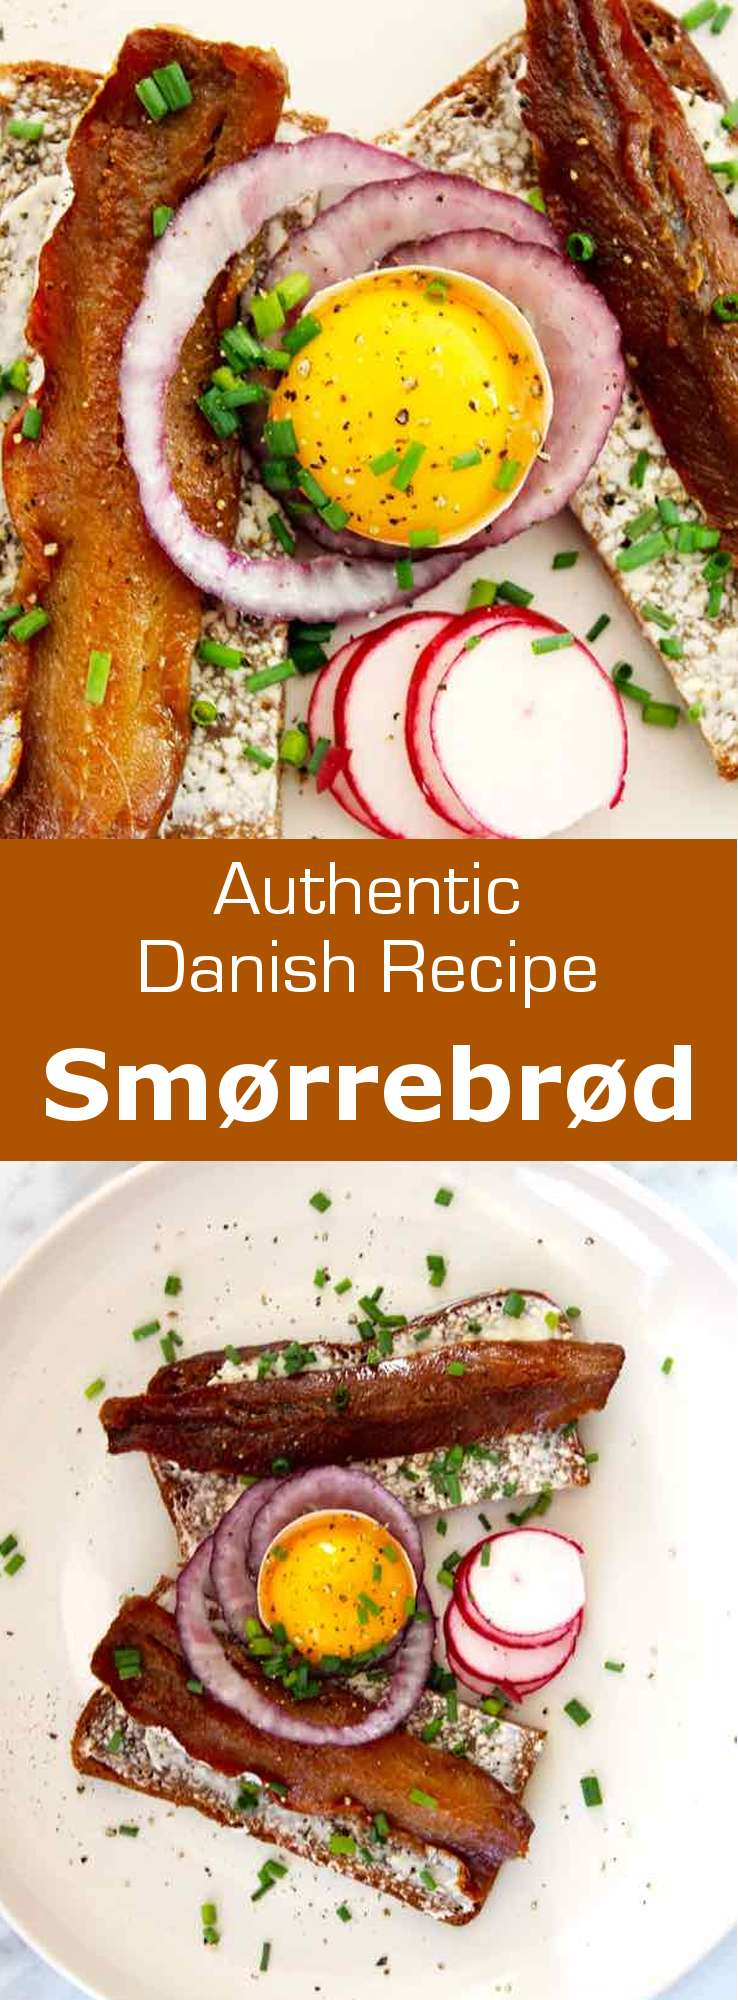 Smorrebrod,‏ 'butter and bread' in Danish, is an open faced sandwich prepared with dense rye bread and toppings that can include cold cuts, fish or cheese. #Danish #Denmark #DanishCuisine #Scandinavia #ScandinavianCuisine #WorldCuisine #196flavors